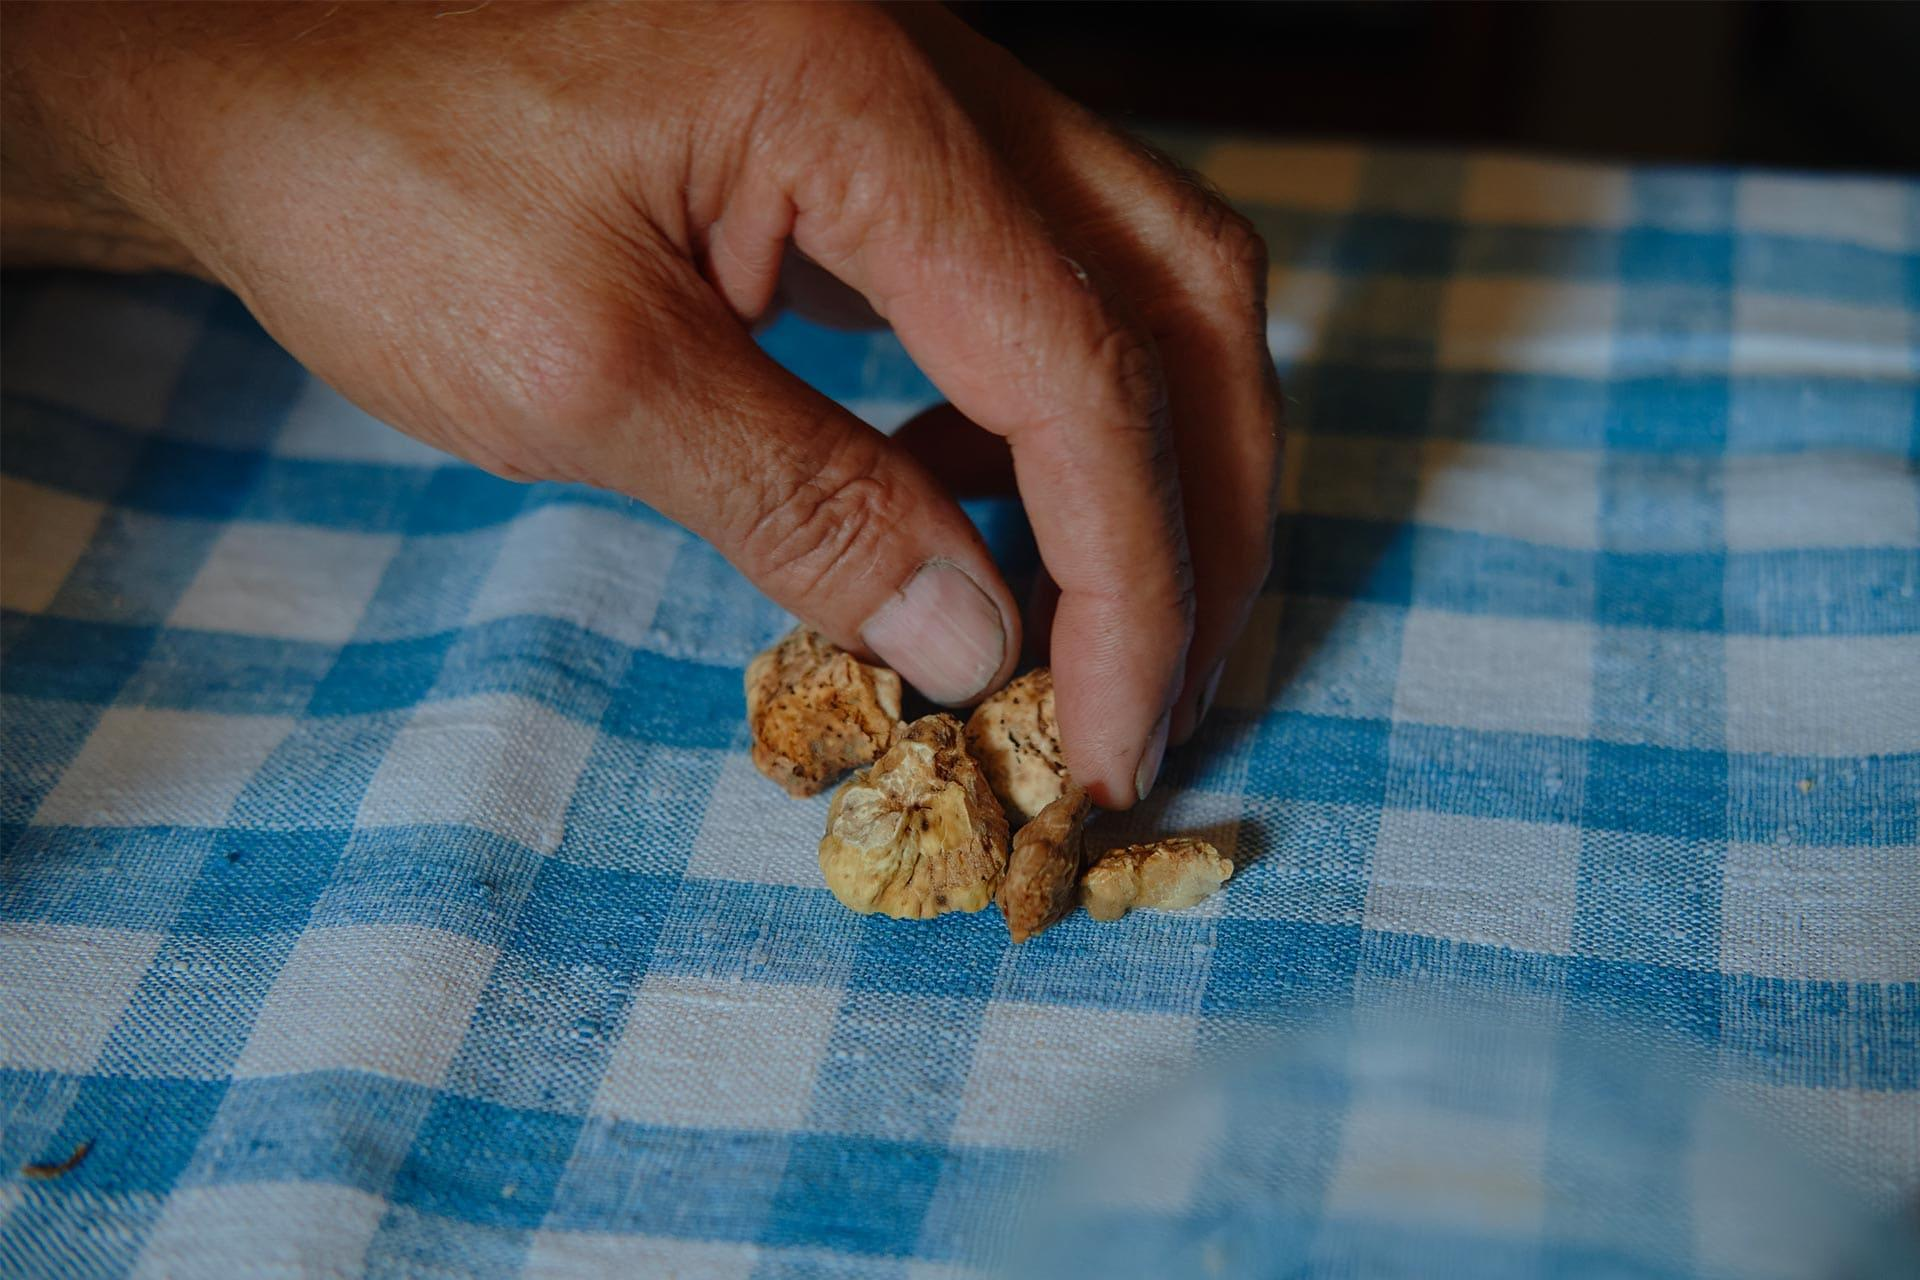 Man touching some small truffle on a table